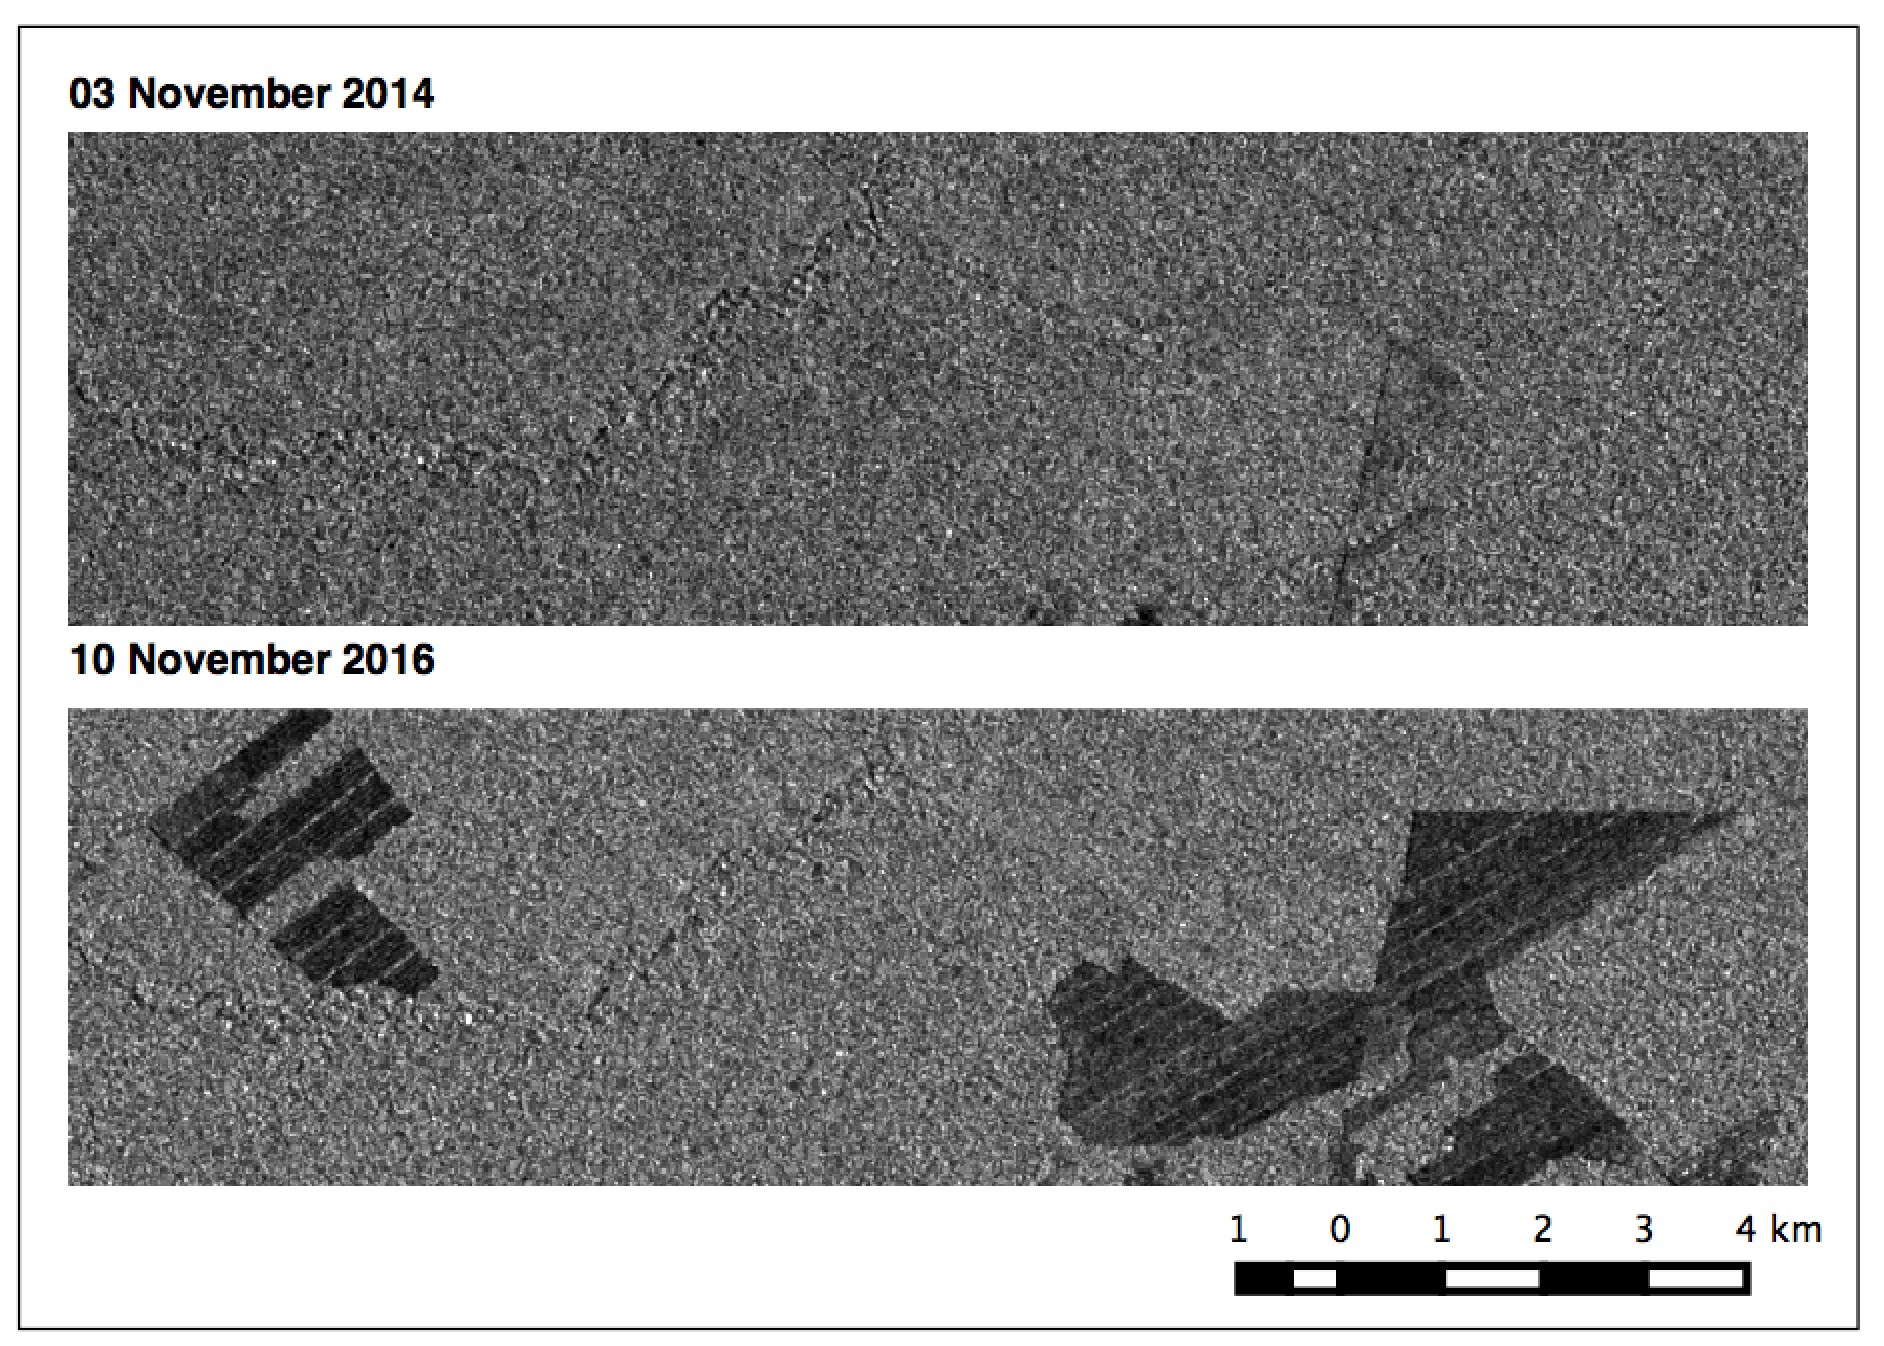 Bolivian deforestation due to sugarcane agriculture seen in Sentinel-1 imagery